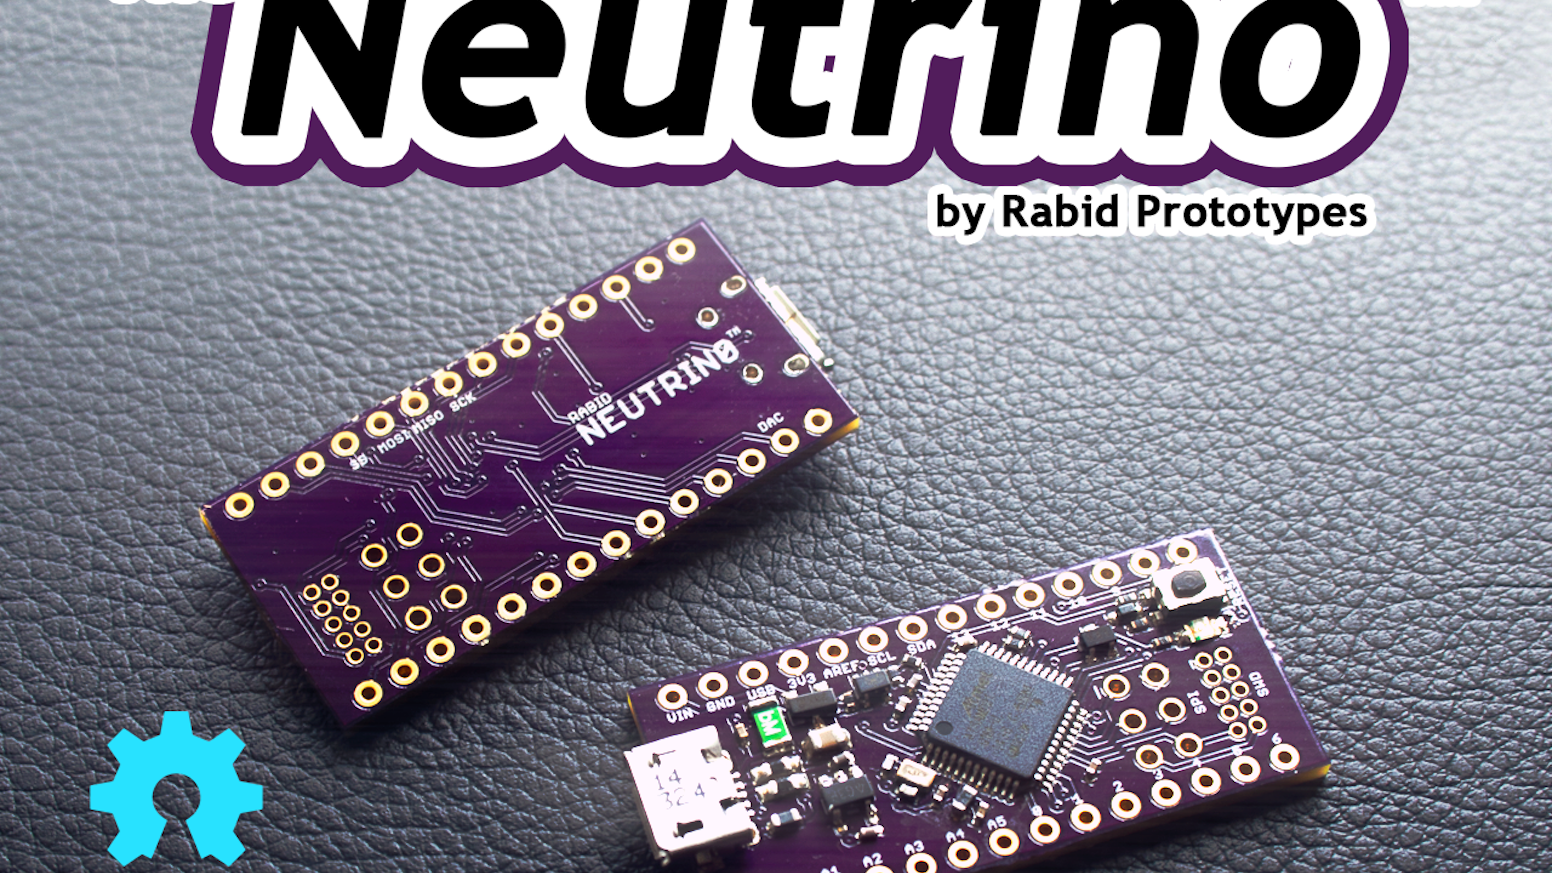 Featuring a 32-bit 48MHz ARM Cortex M0+ processor, the Neutrino is fully compatible with the Arduino Zero!